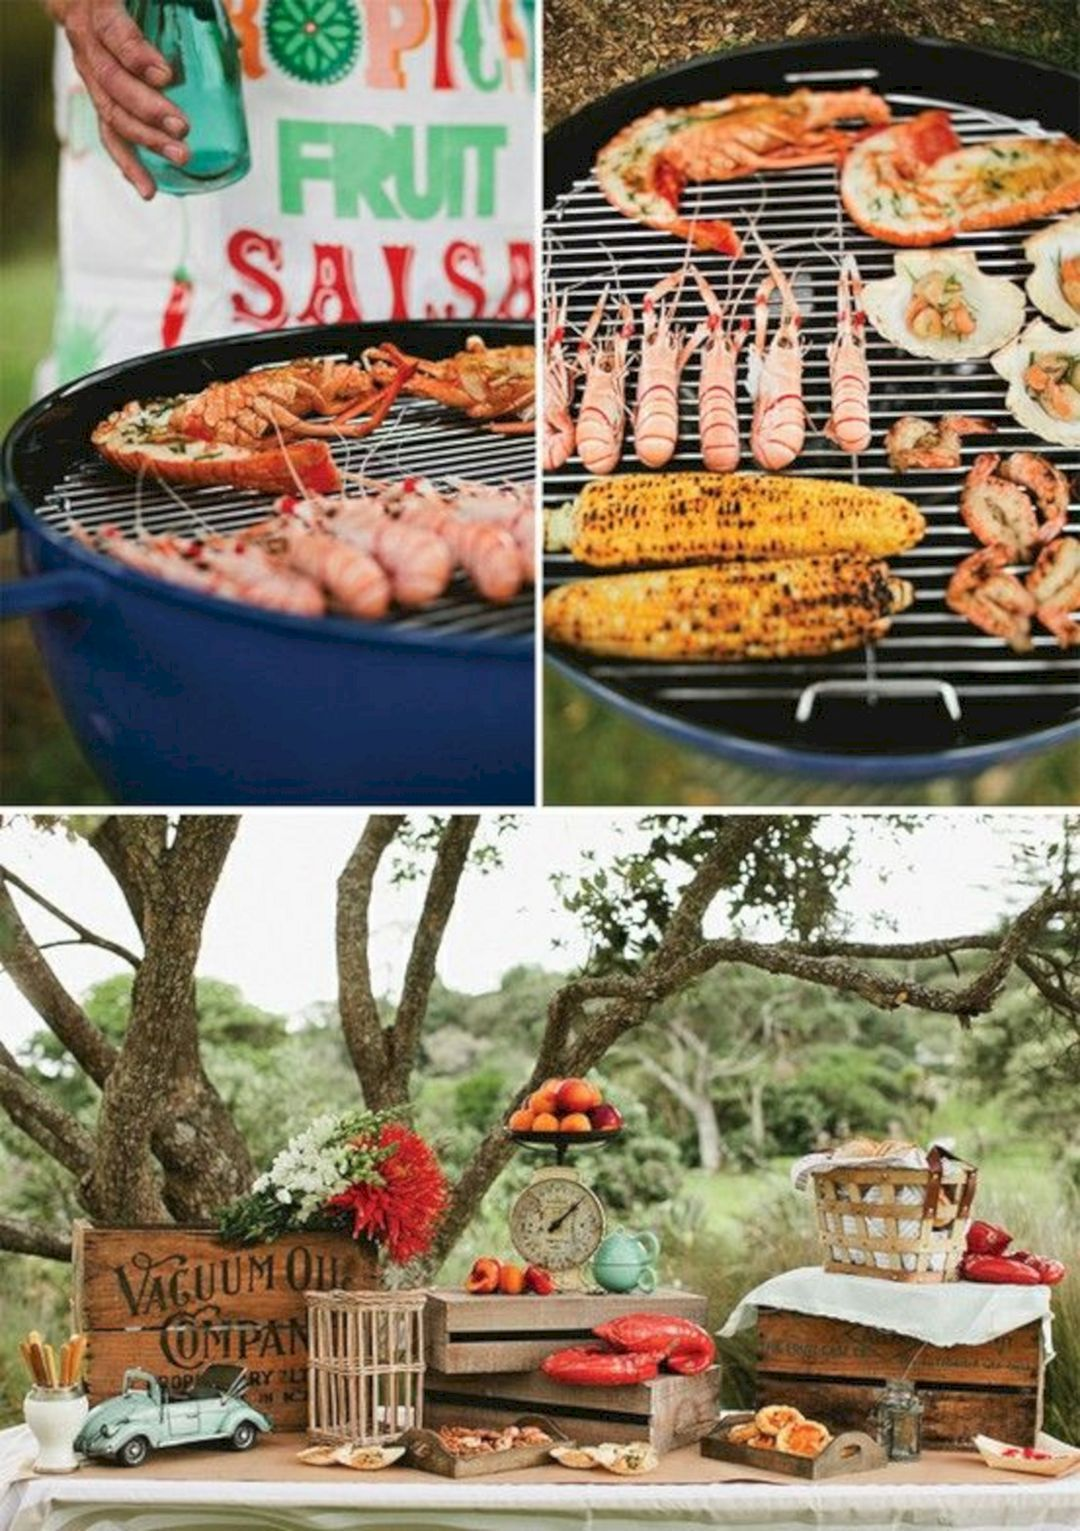 25 Best Rustic Bbq Wedding Ideas For Enjoyment Your Guests